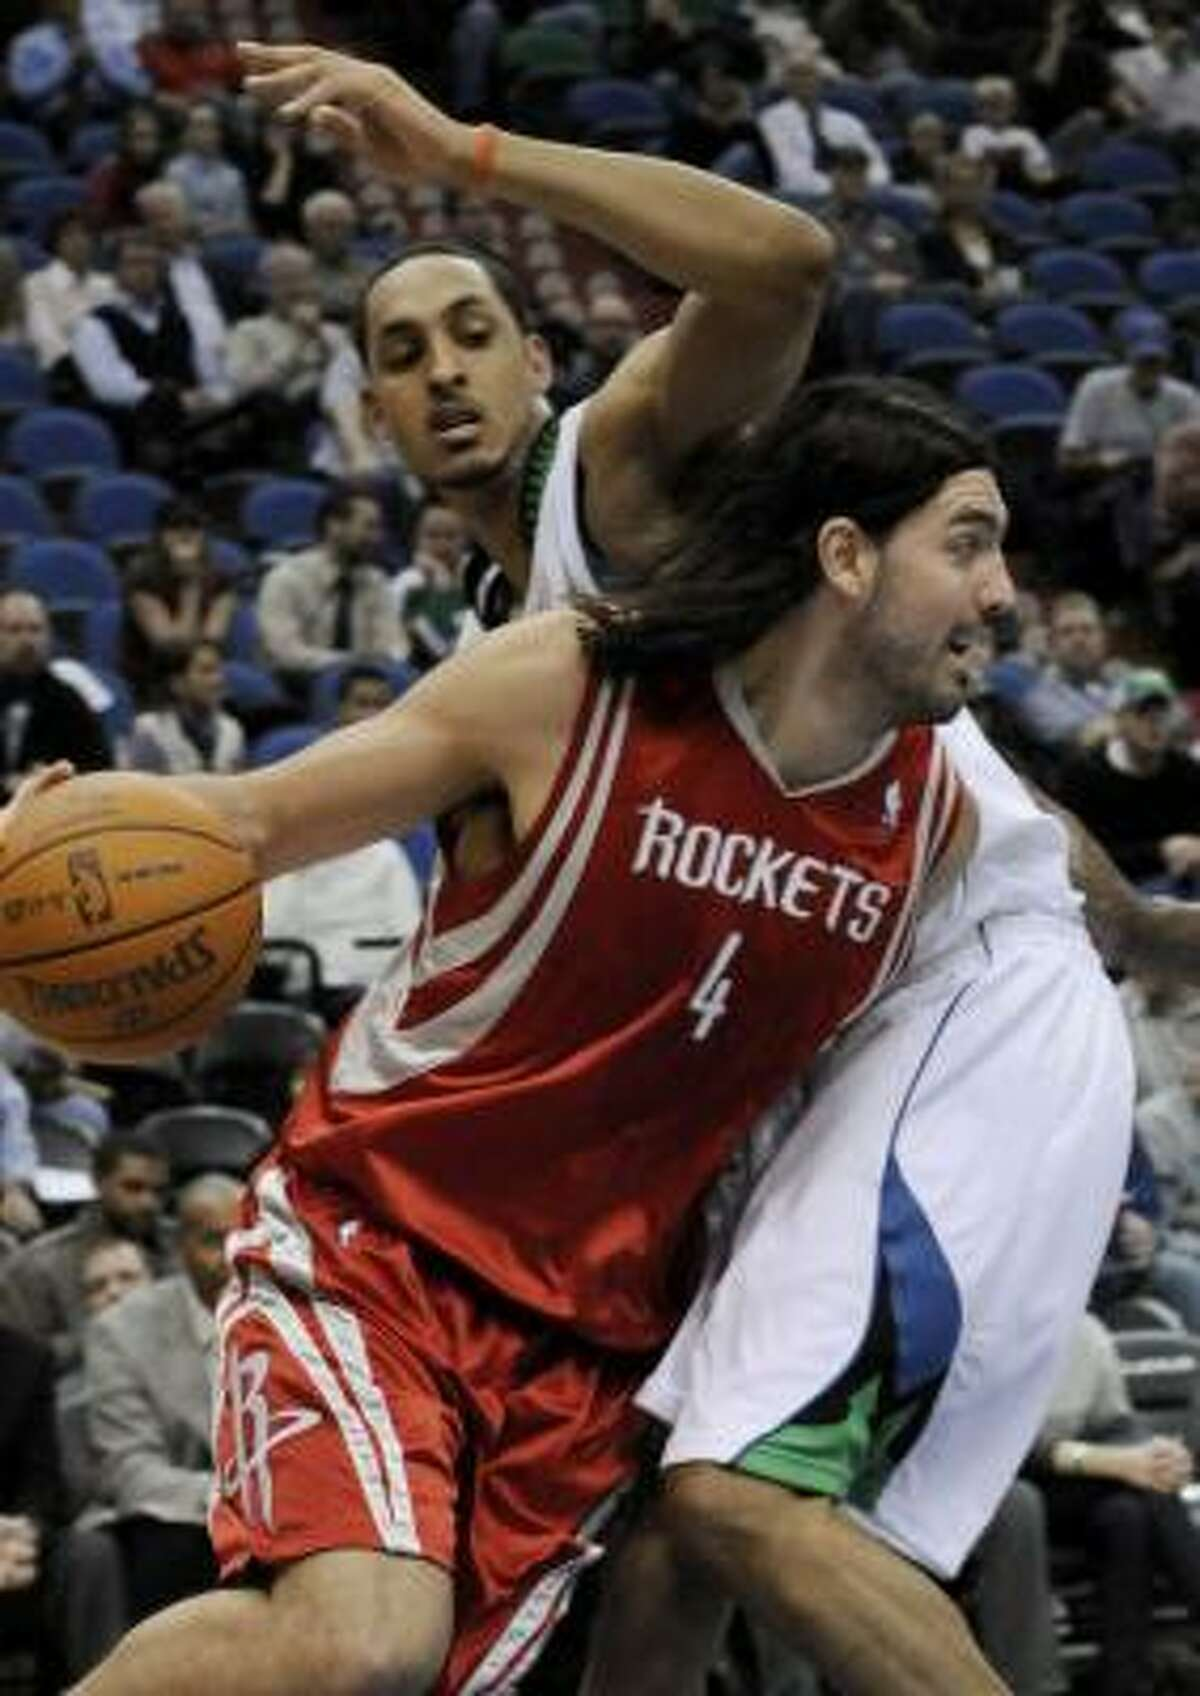 Rockets 97, Timberwolves 84 Rockets forward Luis Scola drives around the Timberwolves' Ryan Hollins during the first quarter.